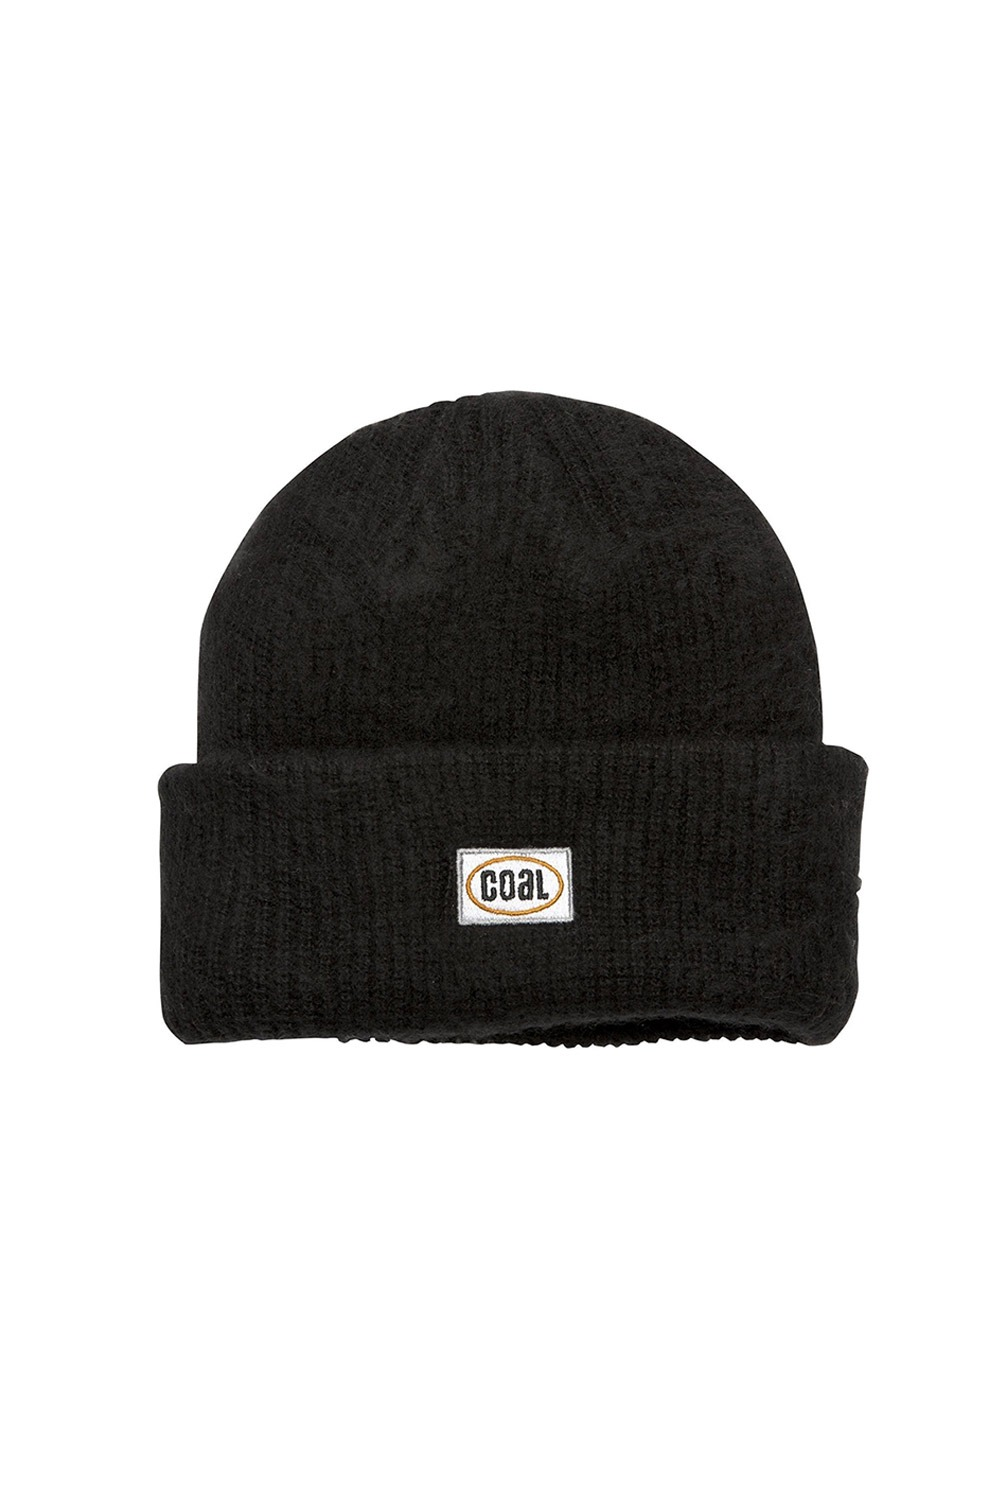 콜 모자 이얼 비니 남녀공용_1920 COAL_THE EARL BEANIE_BLACK_ICA911BK[26]_DICA911BK